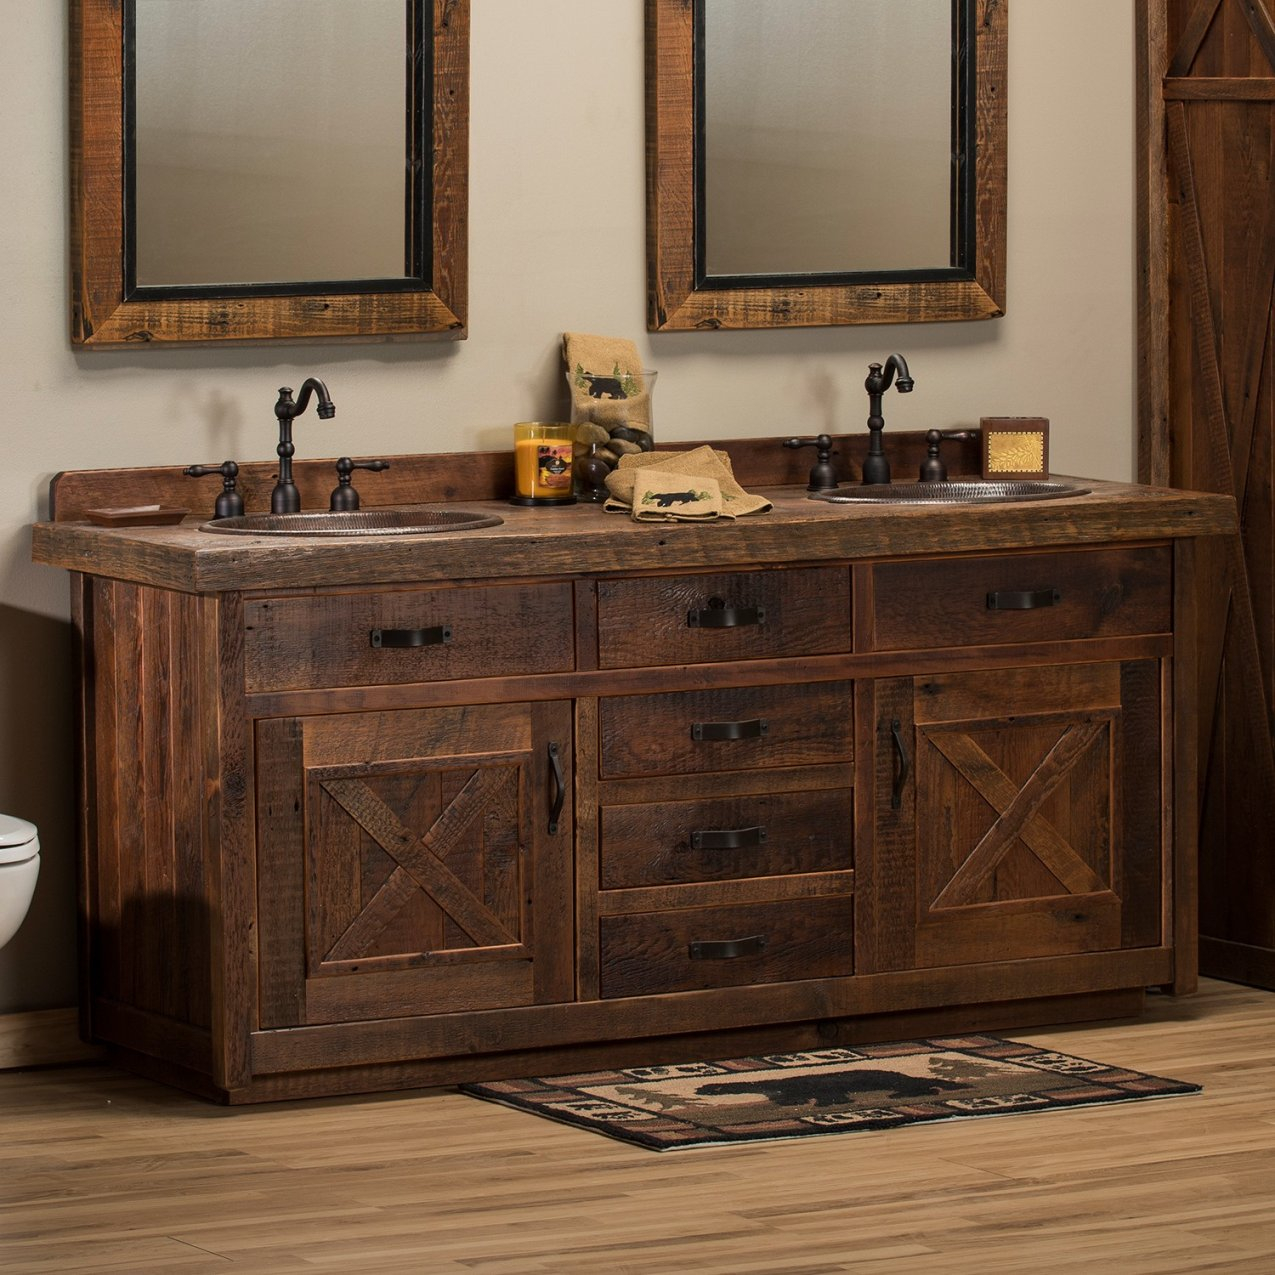 Image of: Rustic Double Vanity Sink Style